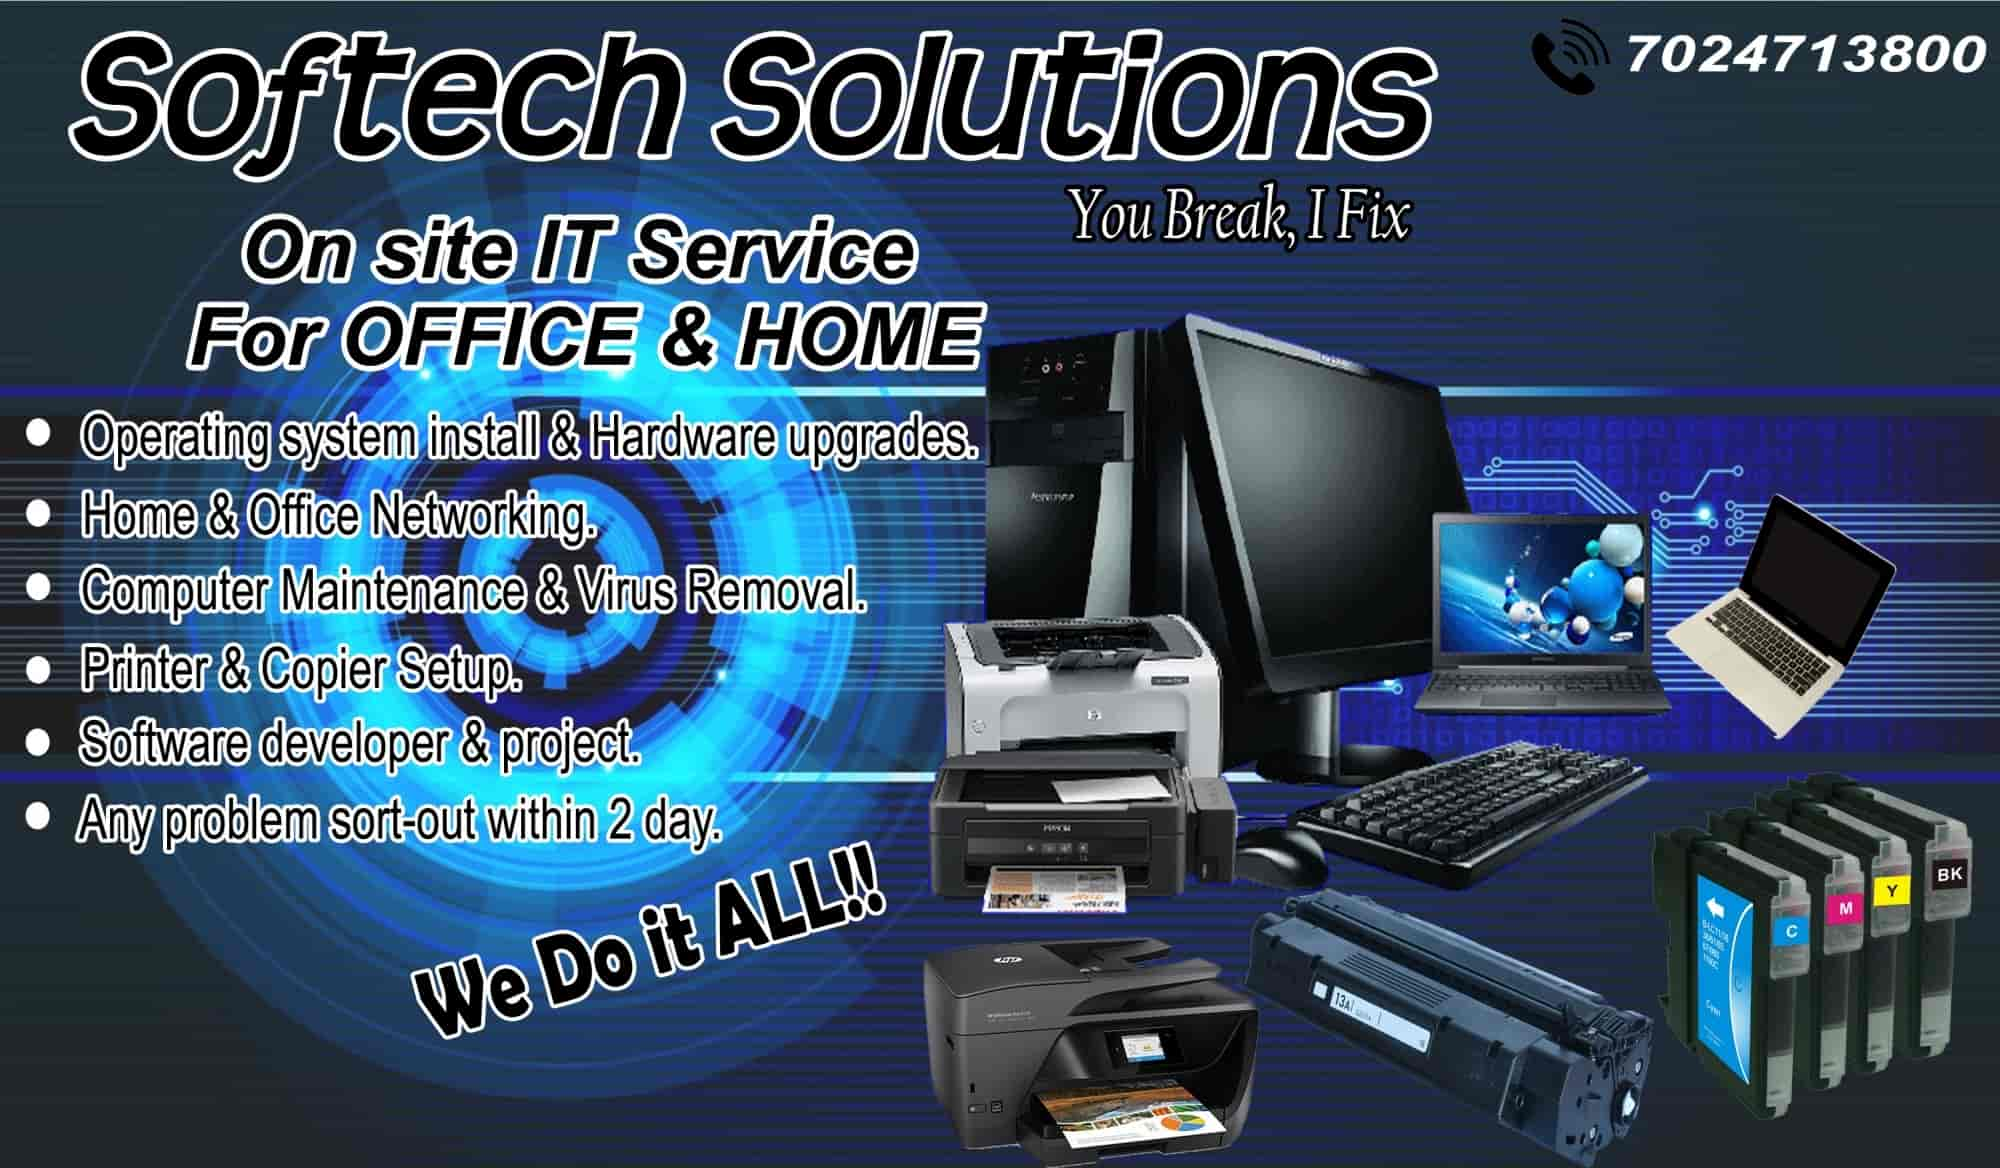 Softech solutions photos thatipur gwalior pictures images visiting card softech solutions photos thatipur gwalior computer repair services reheart Gallery